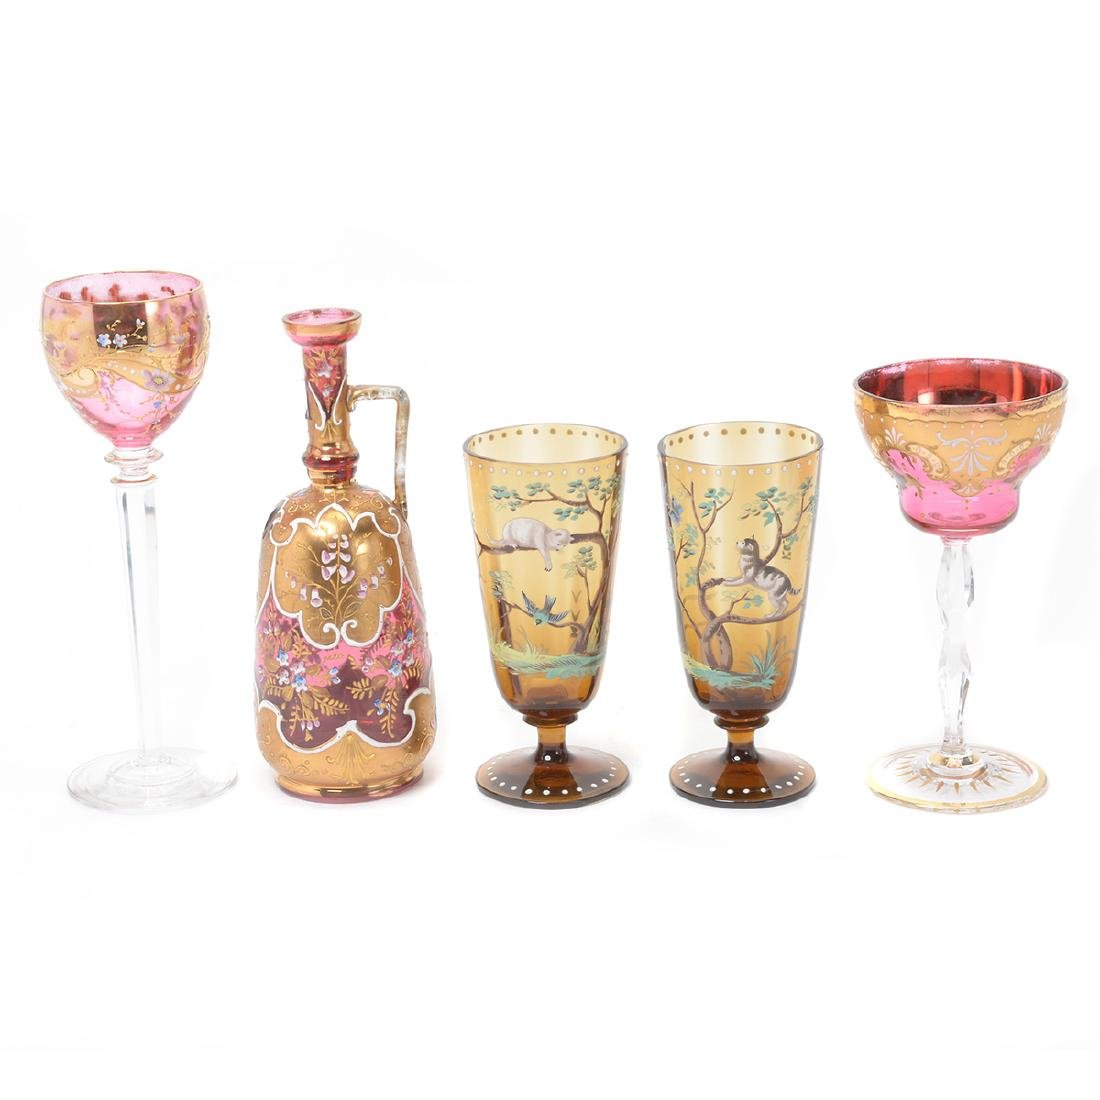 Twenty Bohemian Glass Stemware, Most with Painted